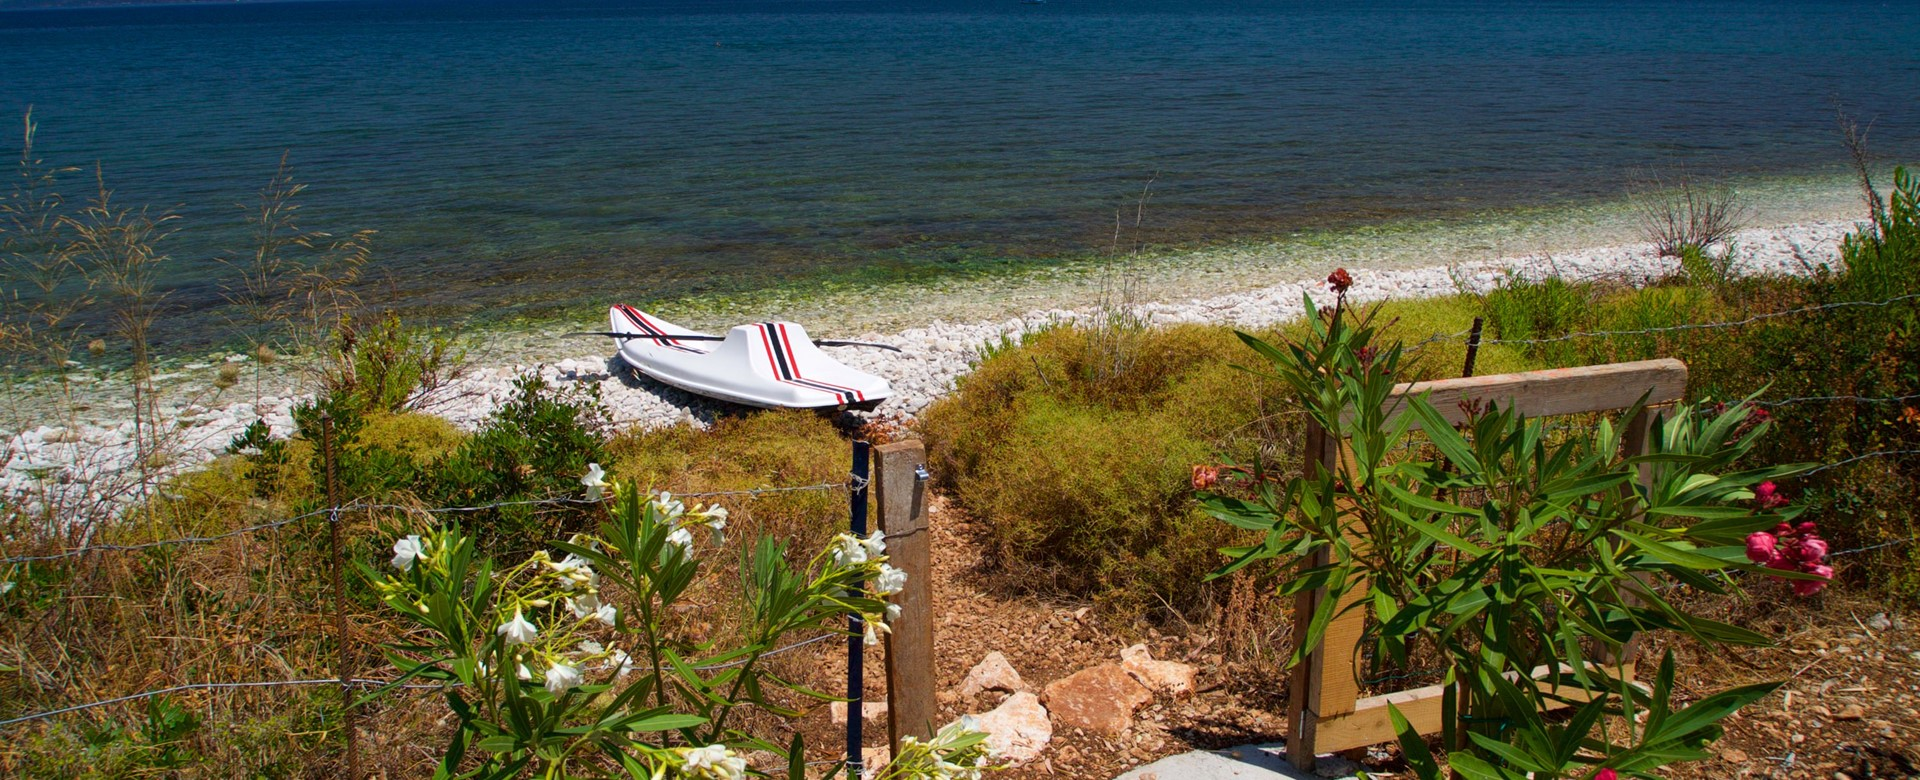 Beach access from Villa Frydi, Karavomilos, Kefalonia, Greek Islands